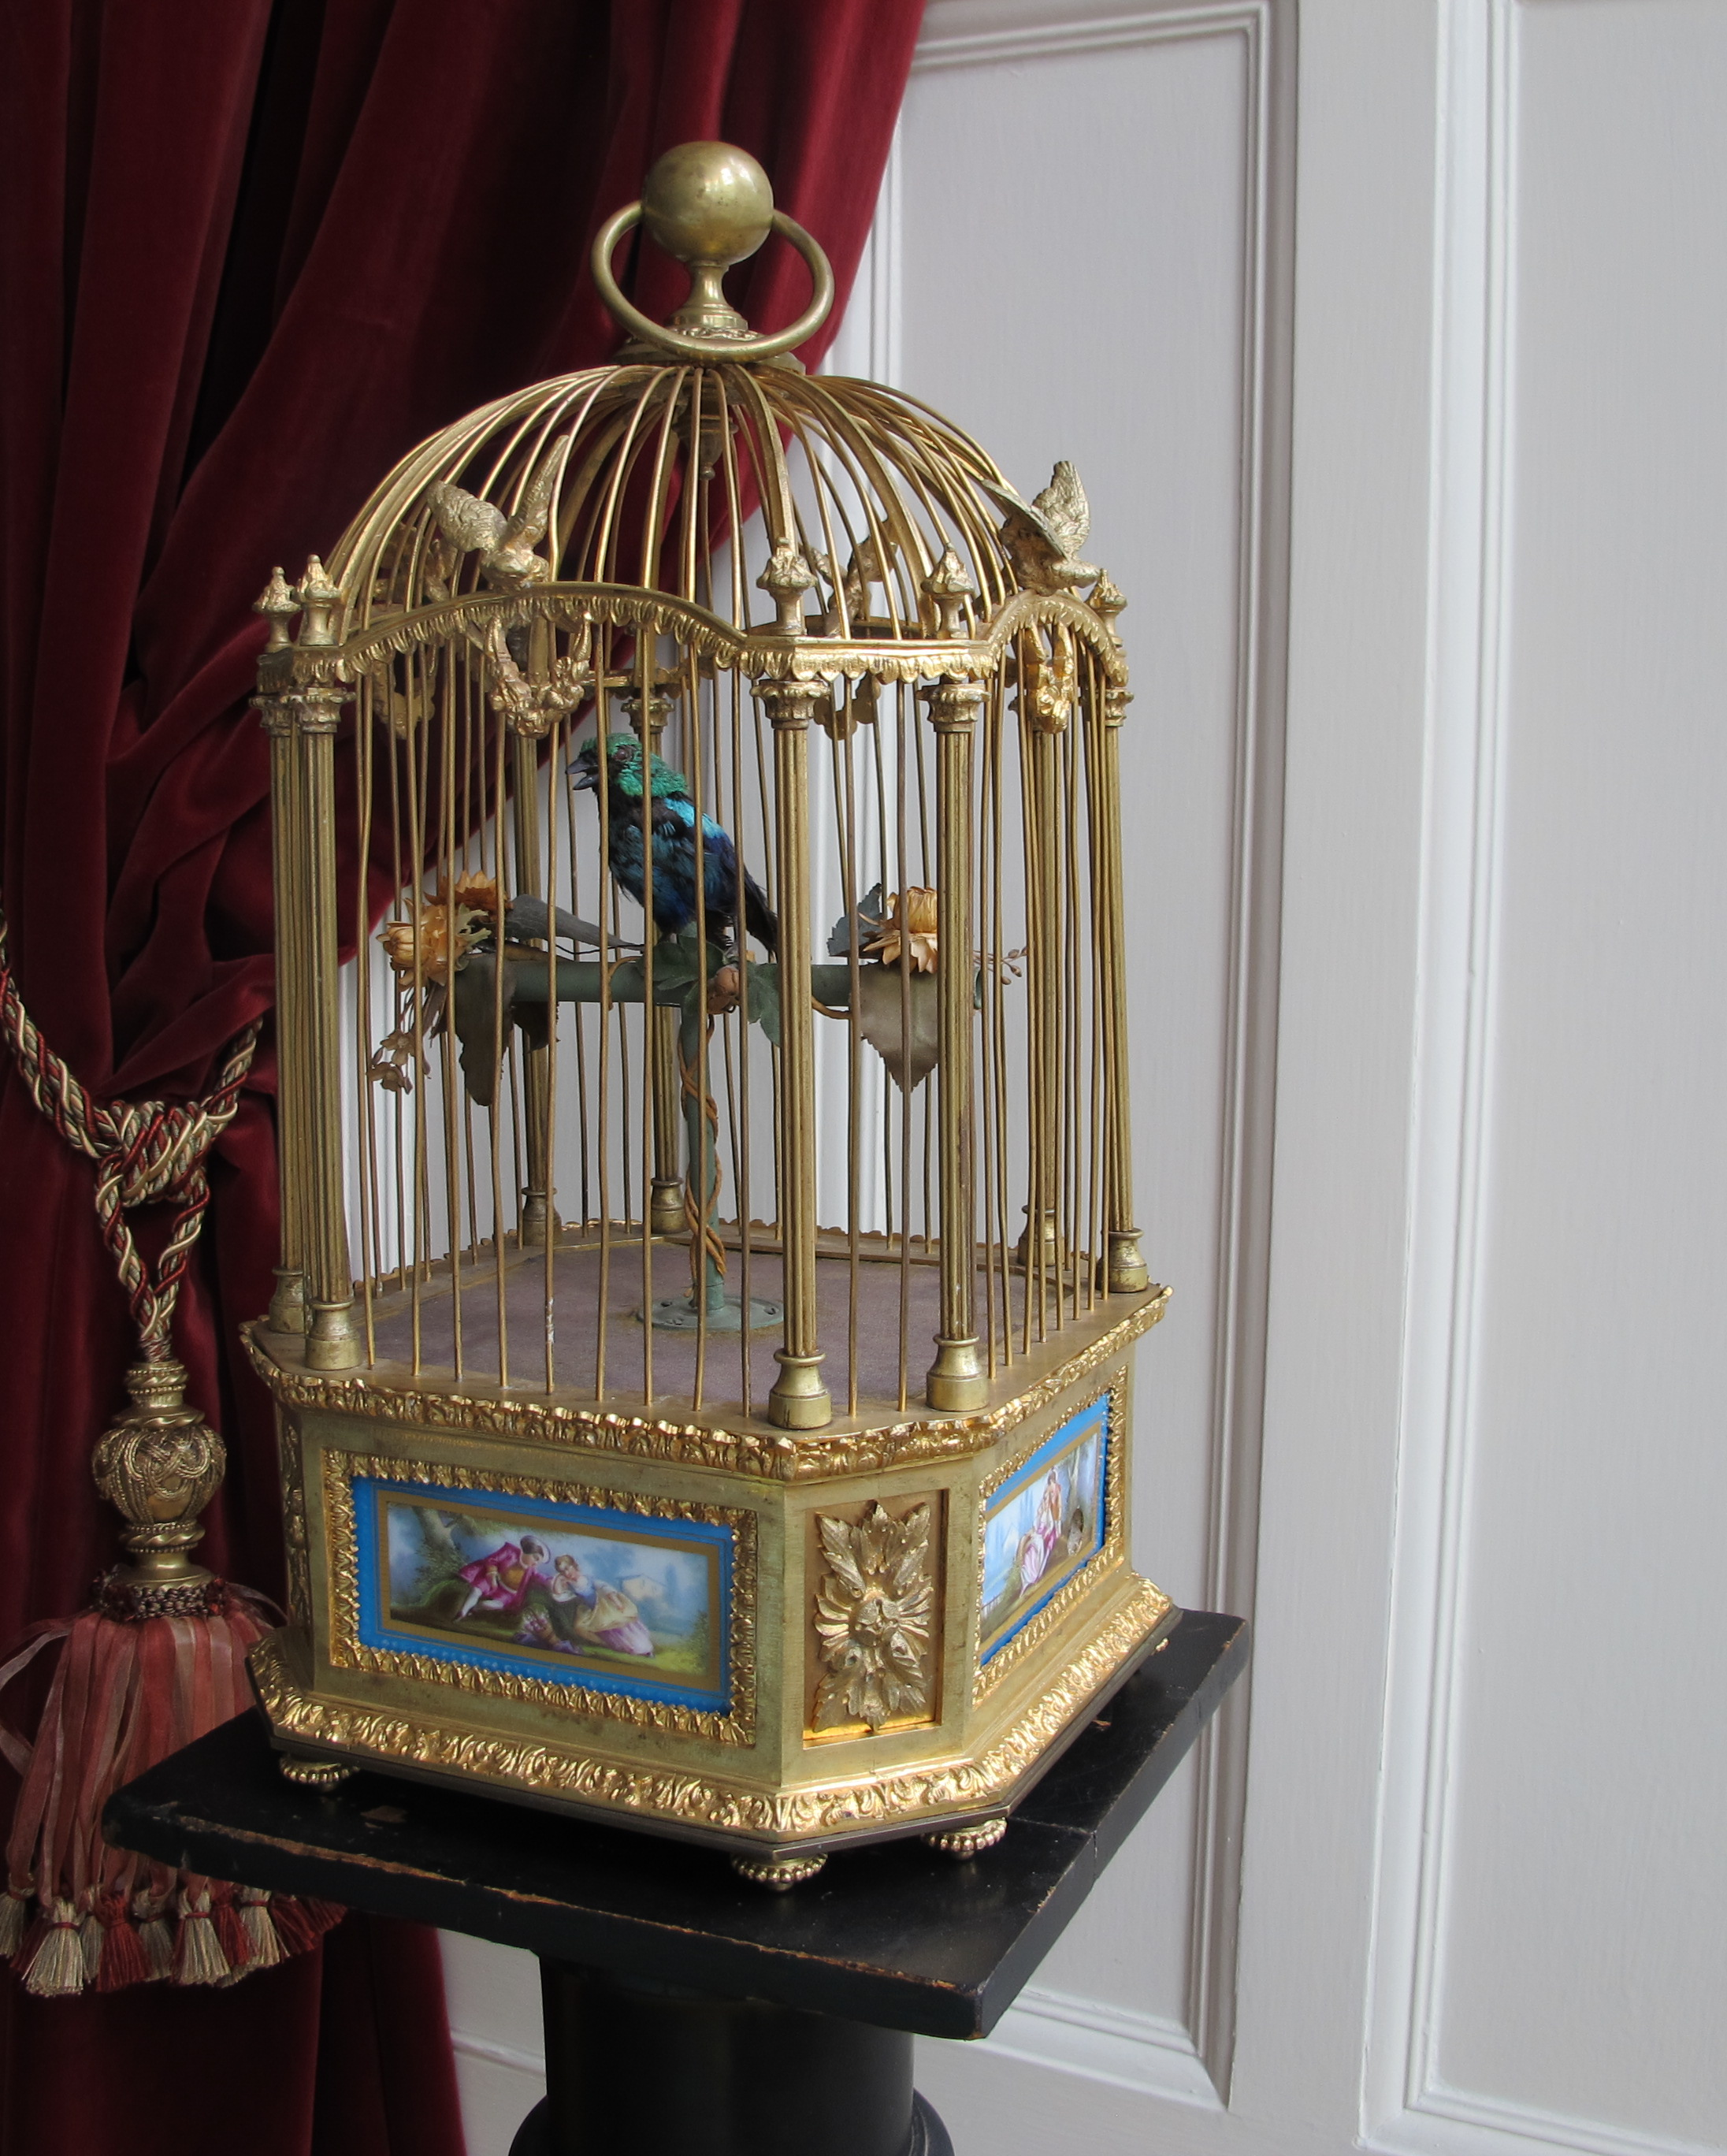 Singing Bird in Gilded Cage | House of Automata | 2192 x 2736 jpeg 1362kB